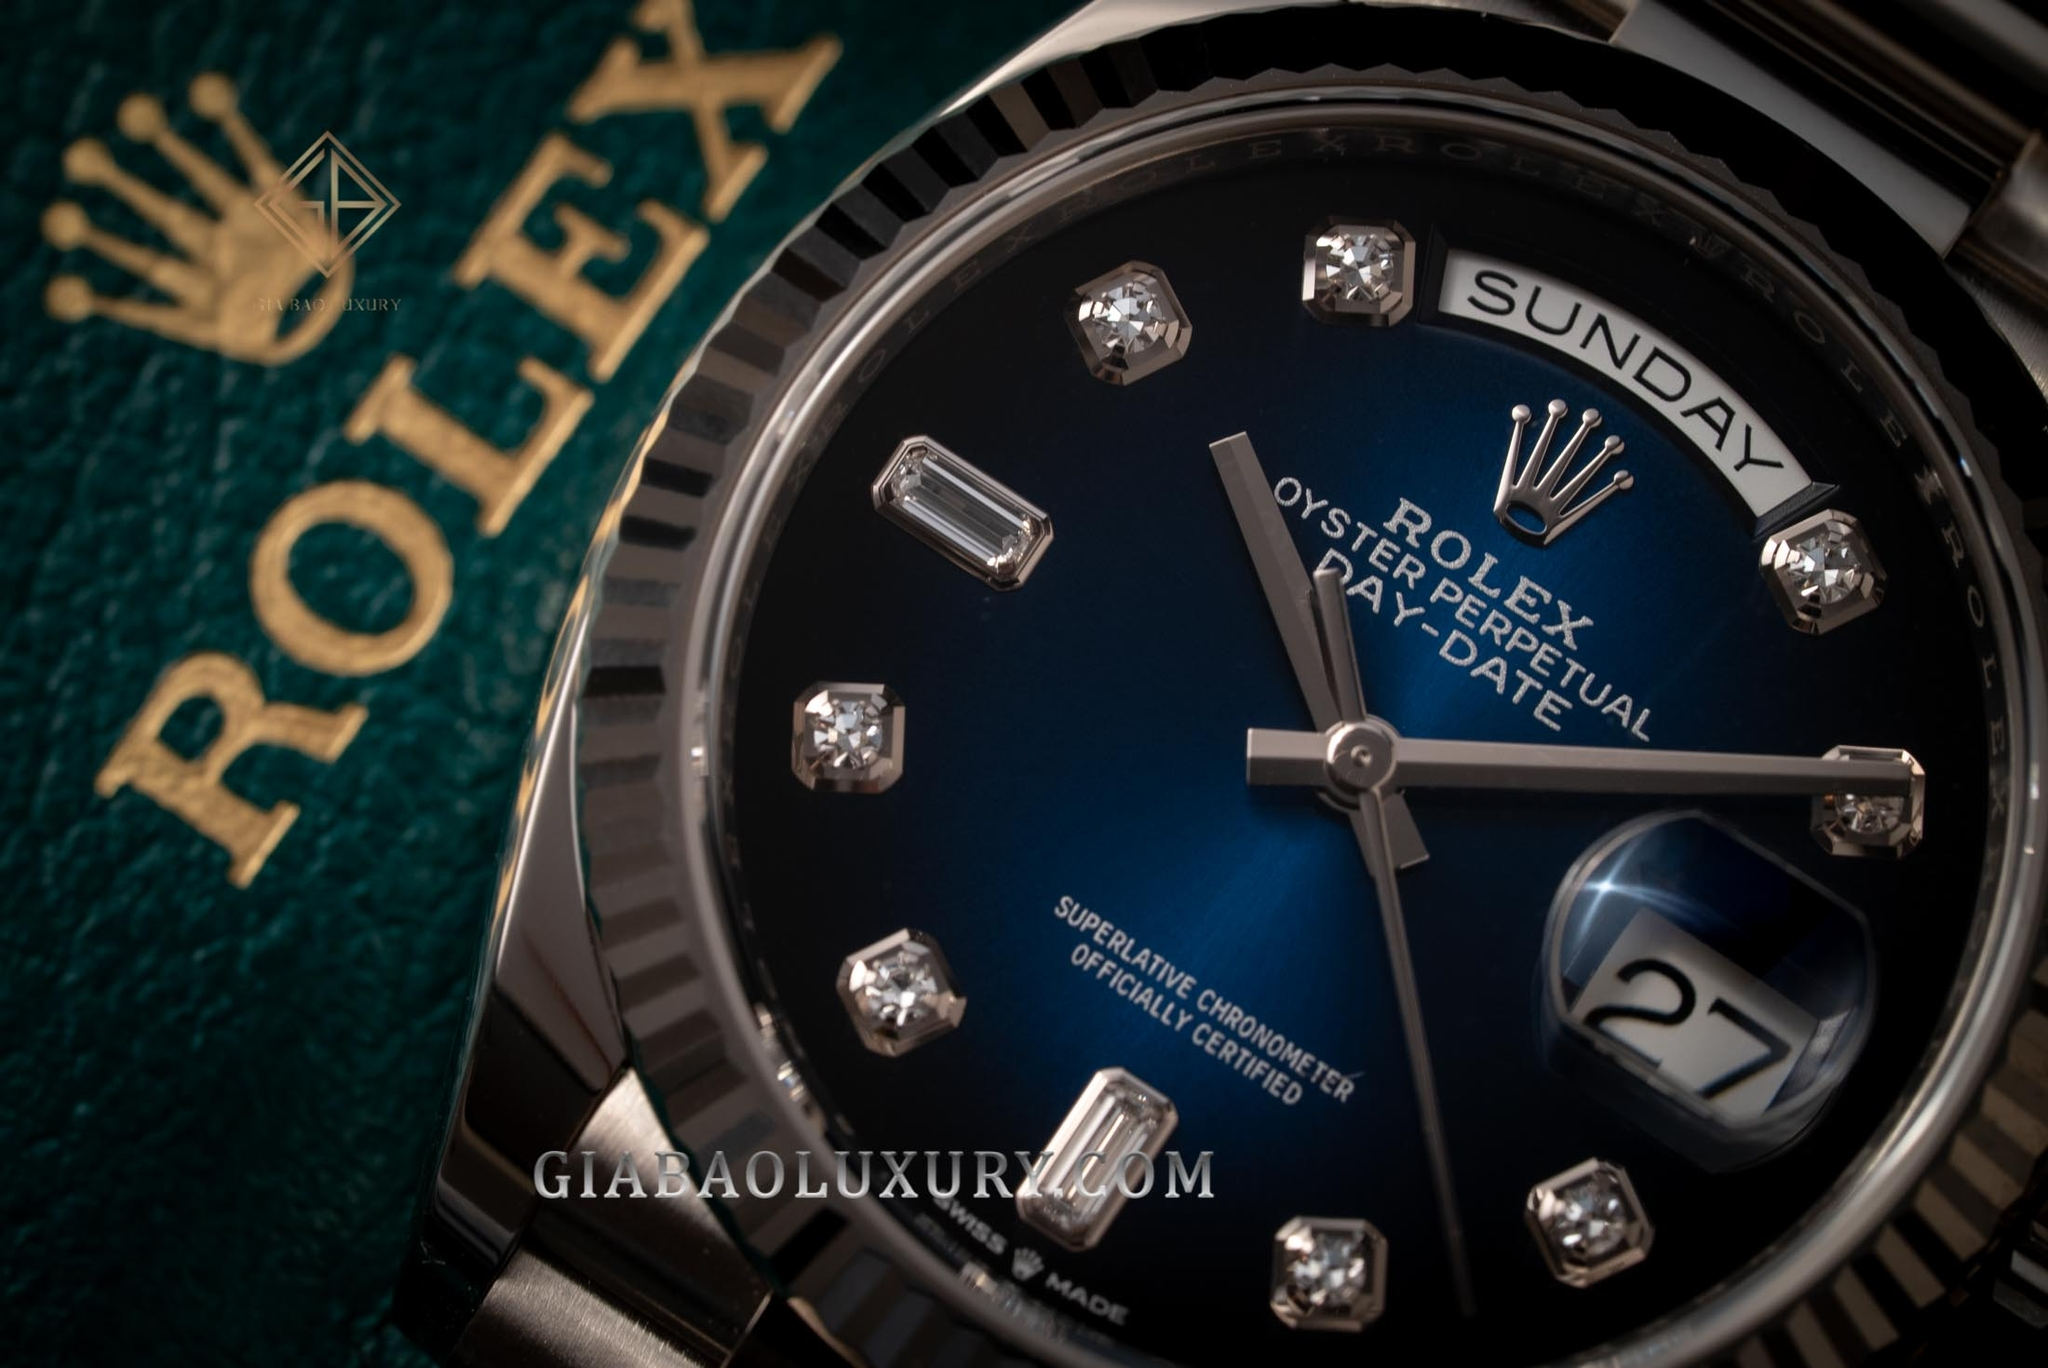 BH Đồng hồ Rolex Day-Date 36 128239 Mặt số Ombré xanh navy